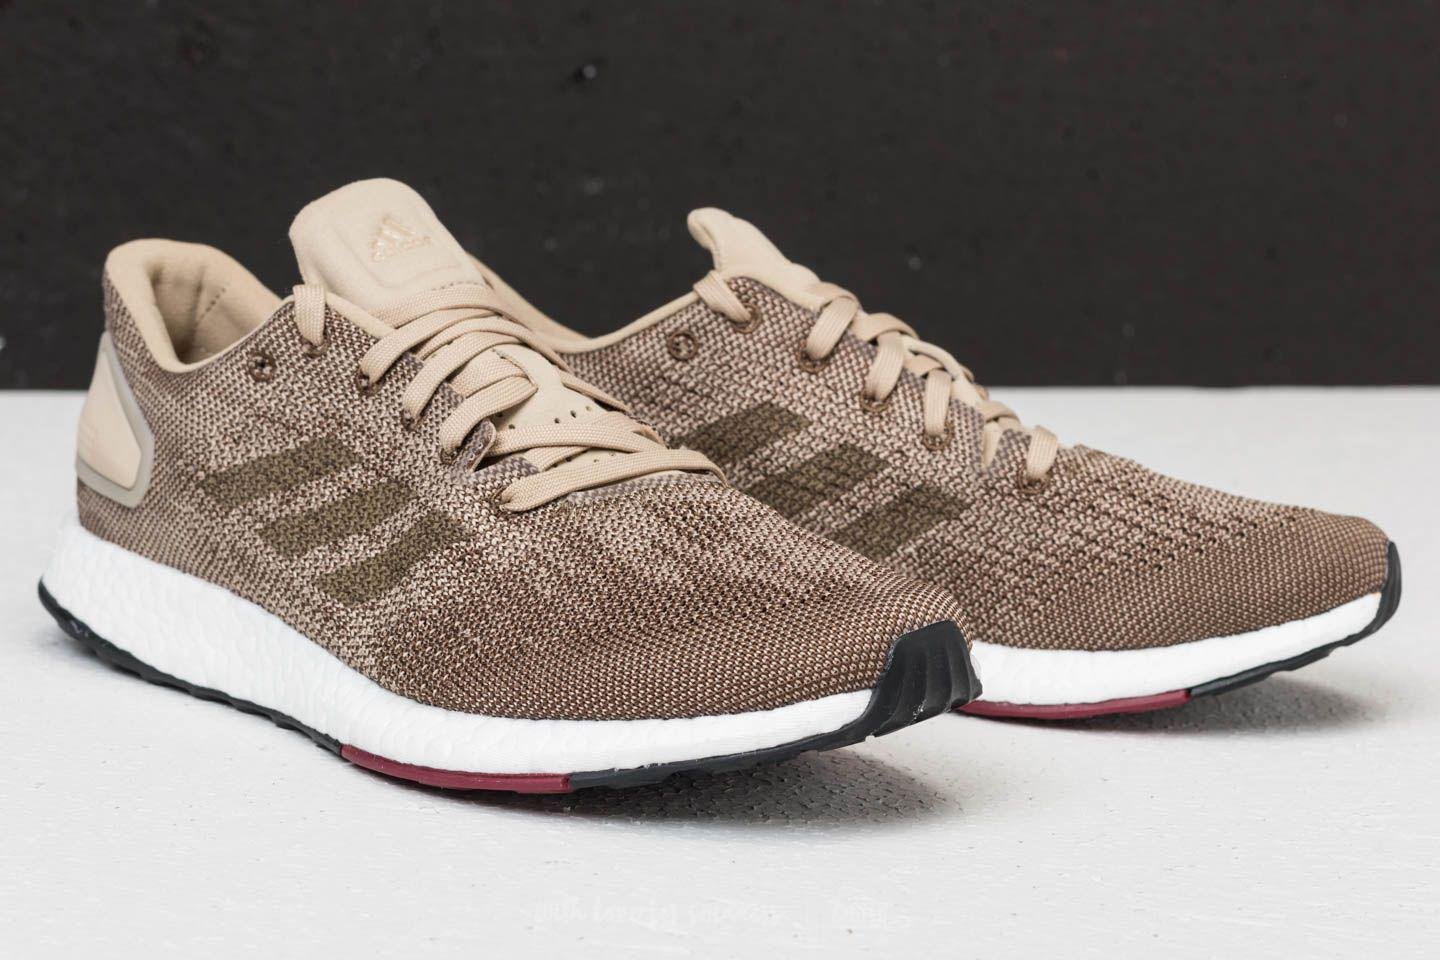 reputable site 8017f db948 adidas Originals Adidas Pureboost Dpr Raw Gold  Trace Olive ...